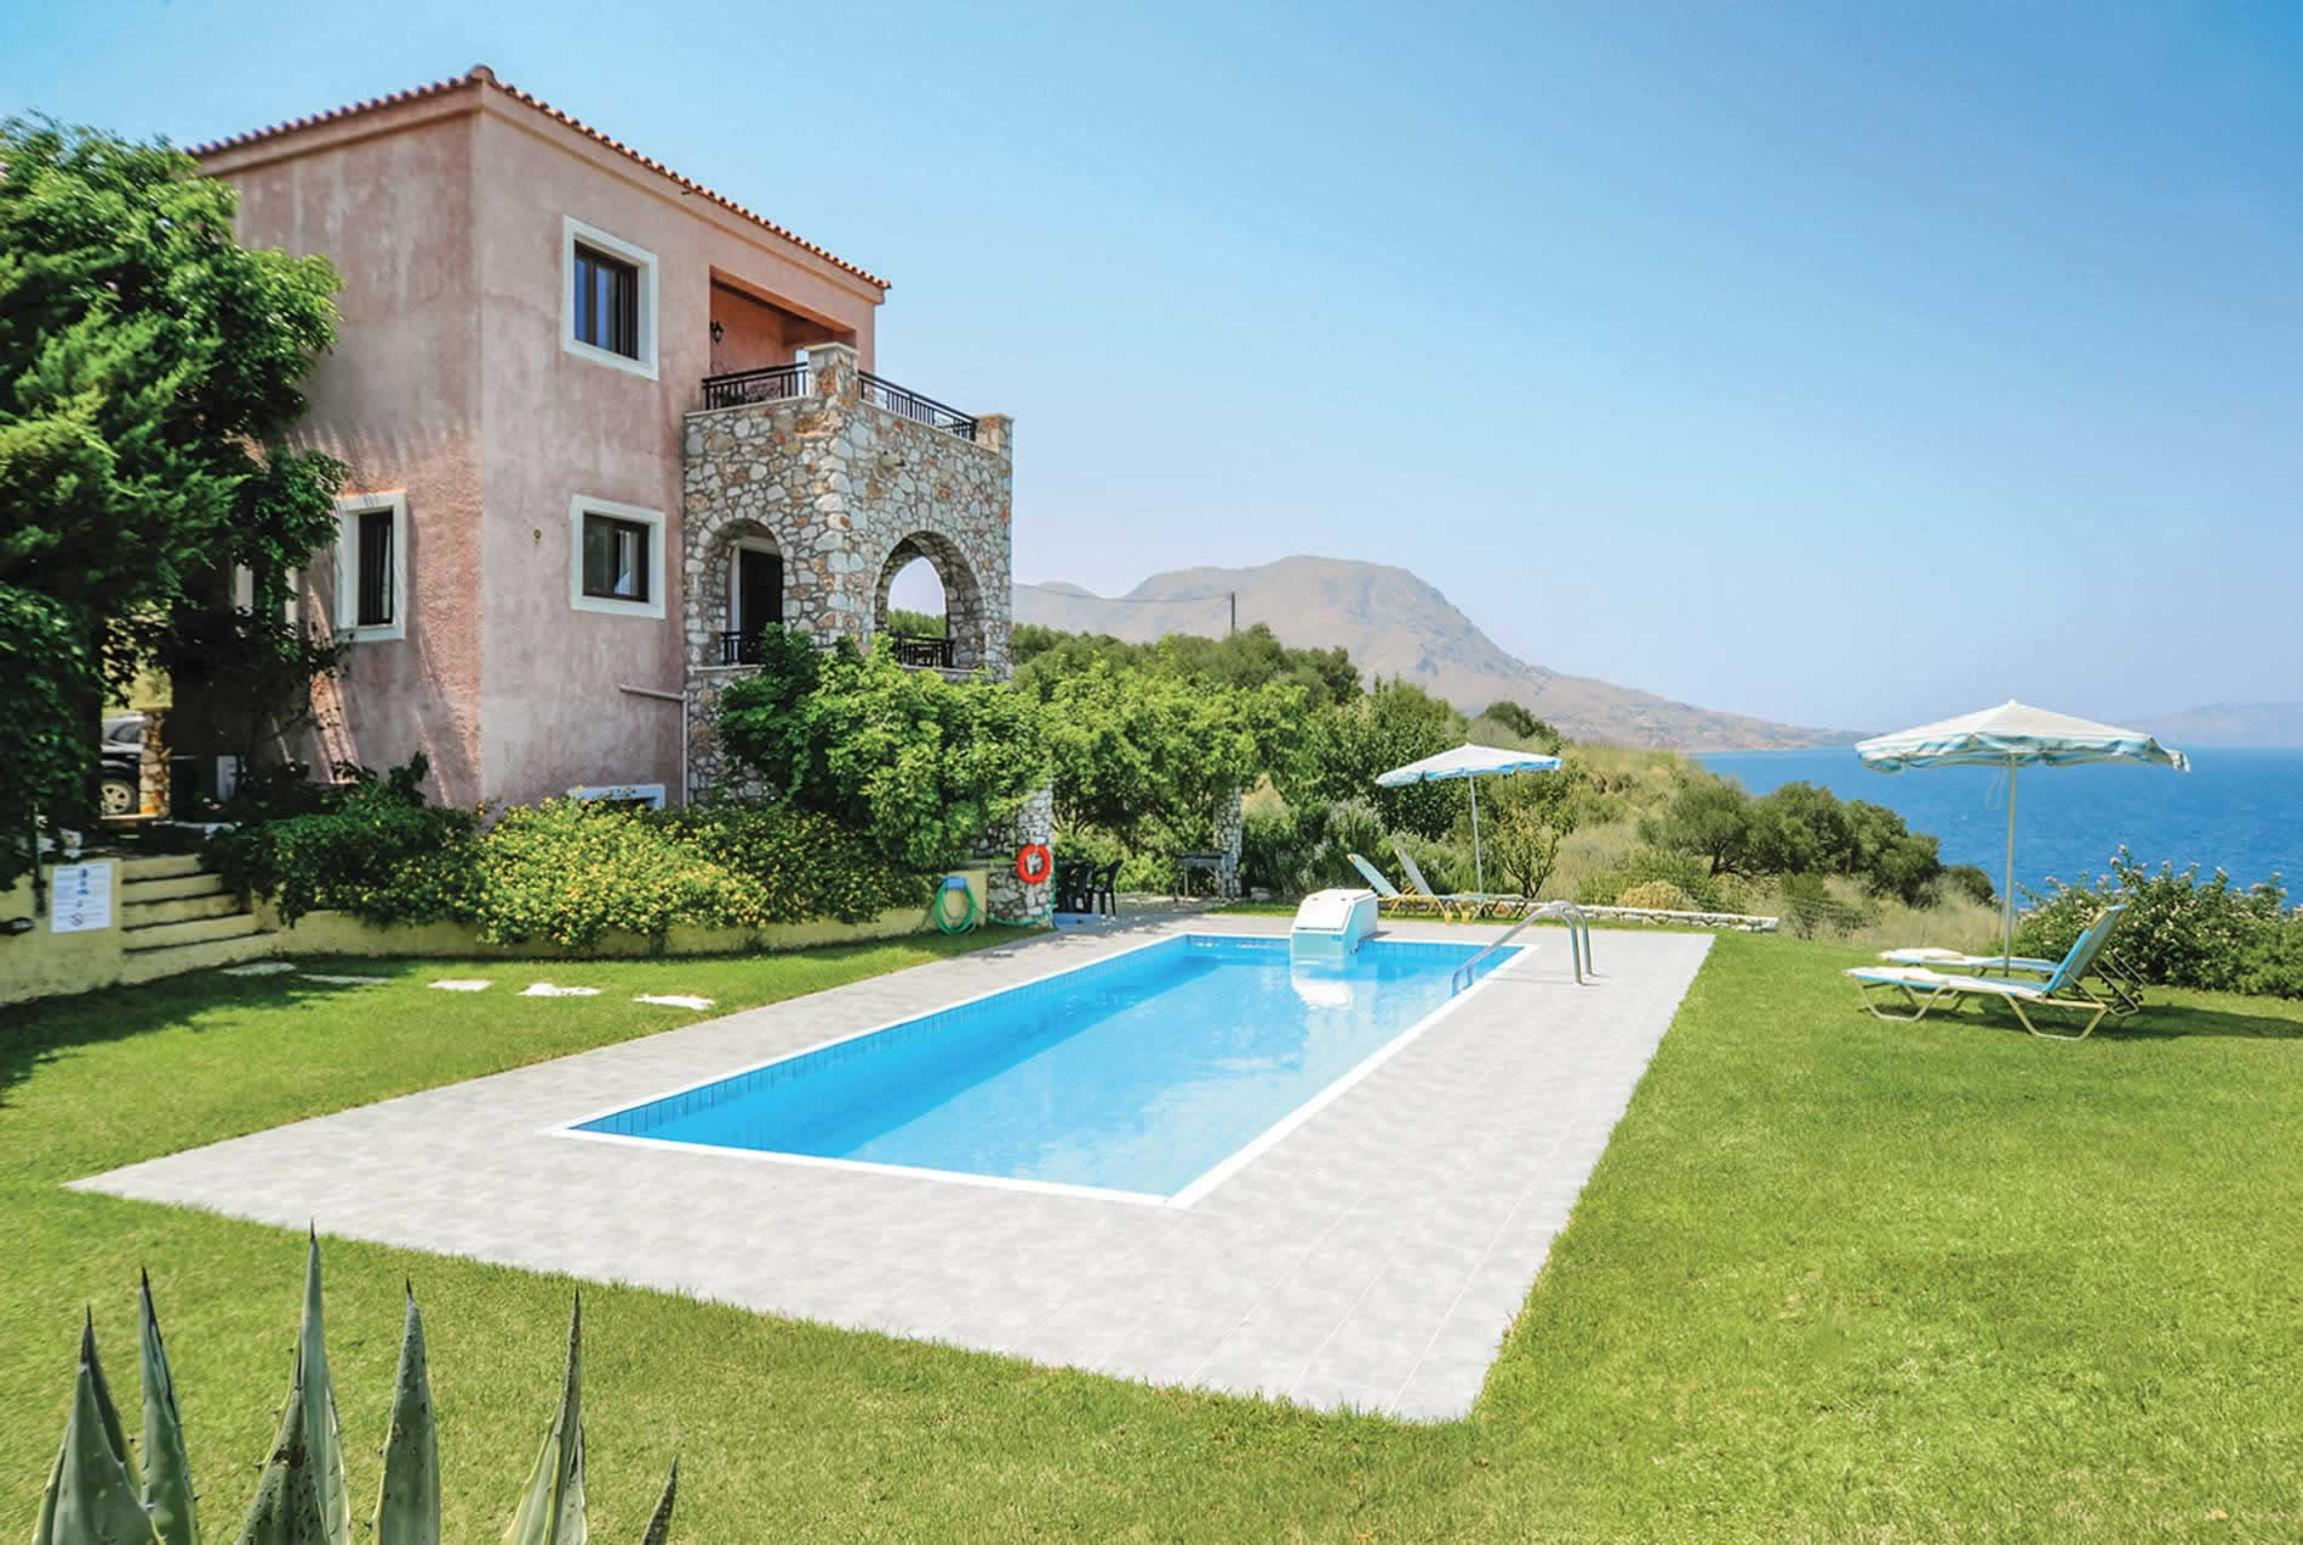 Read more about Aptera villa